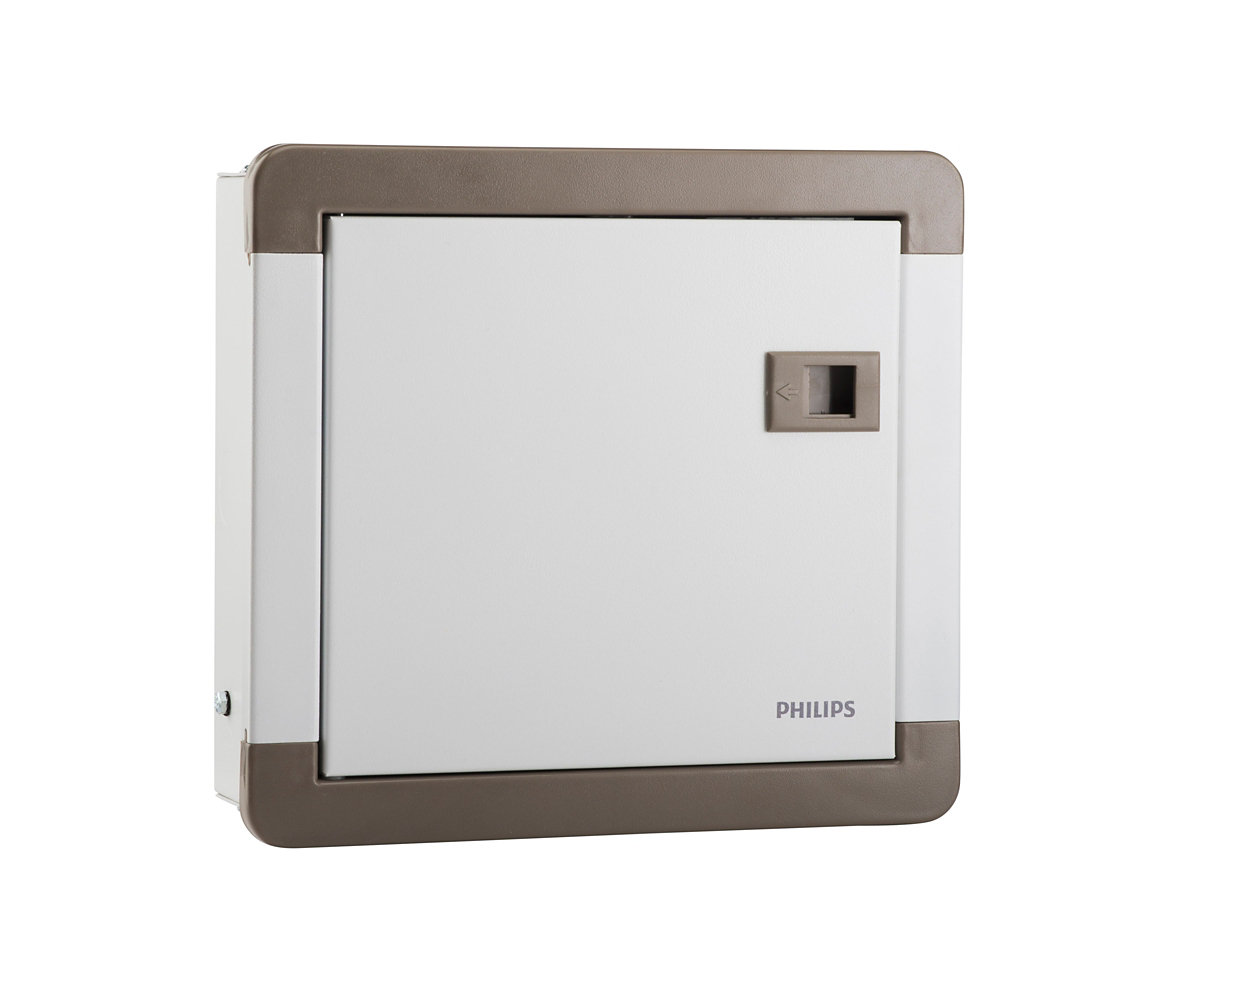 Switch to a safer living with wide range of distribution boxes